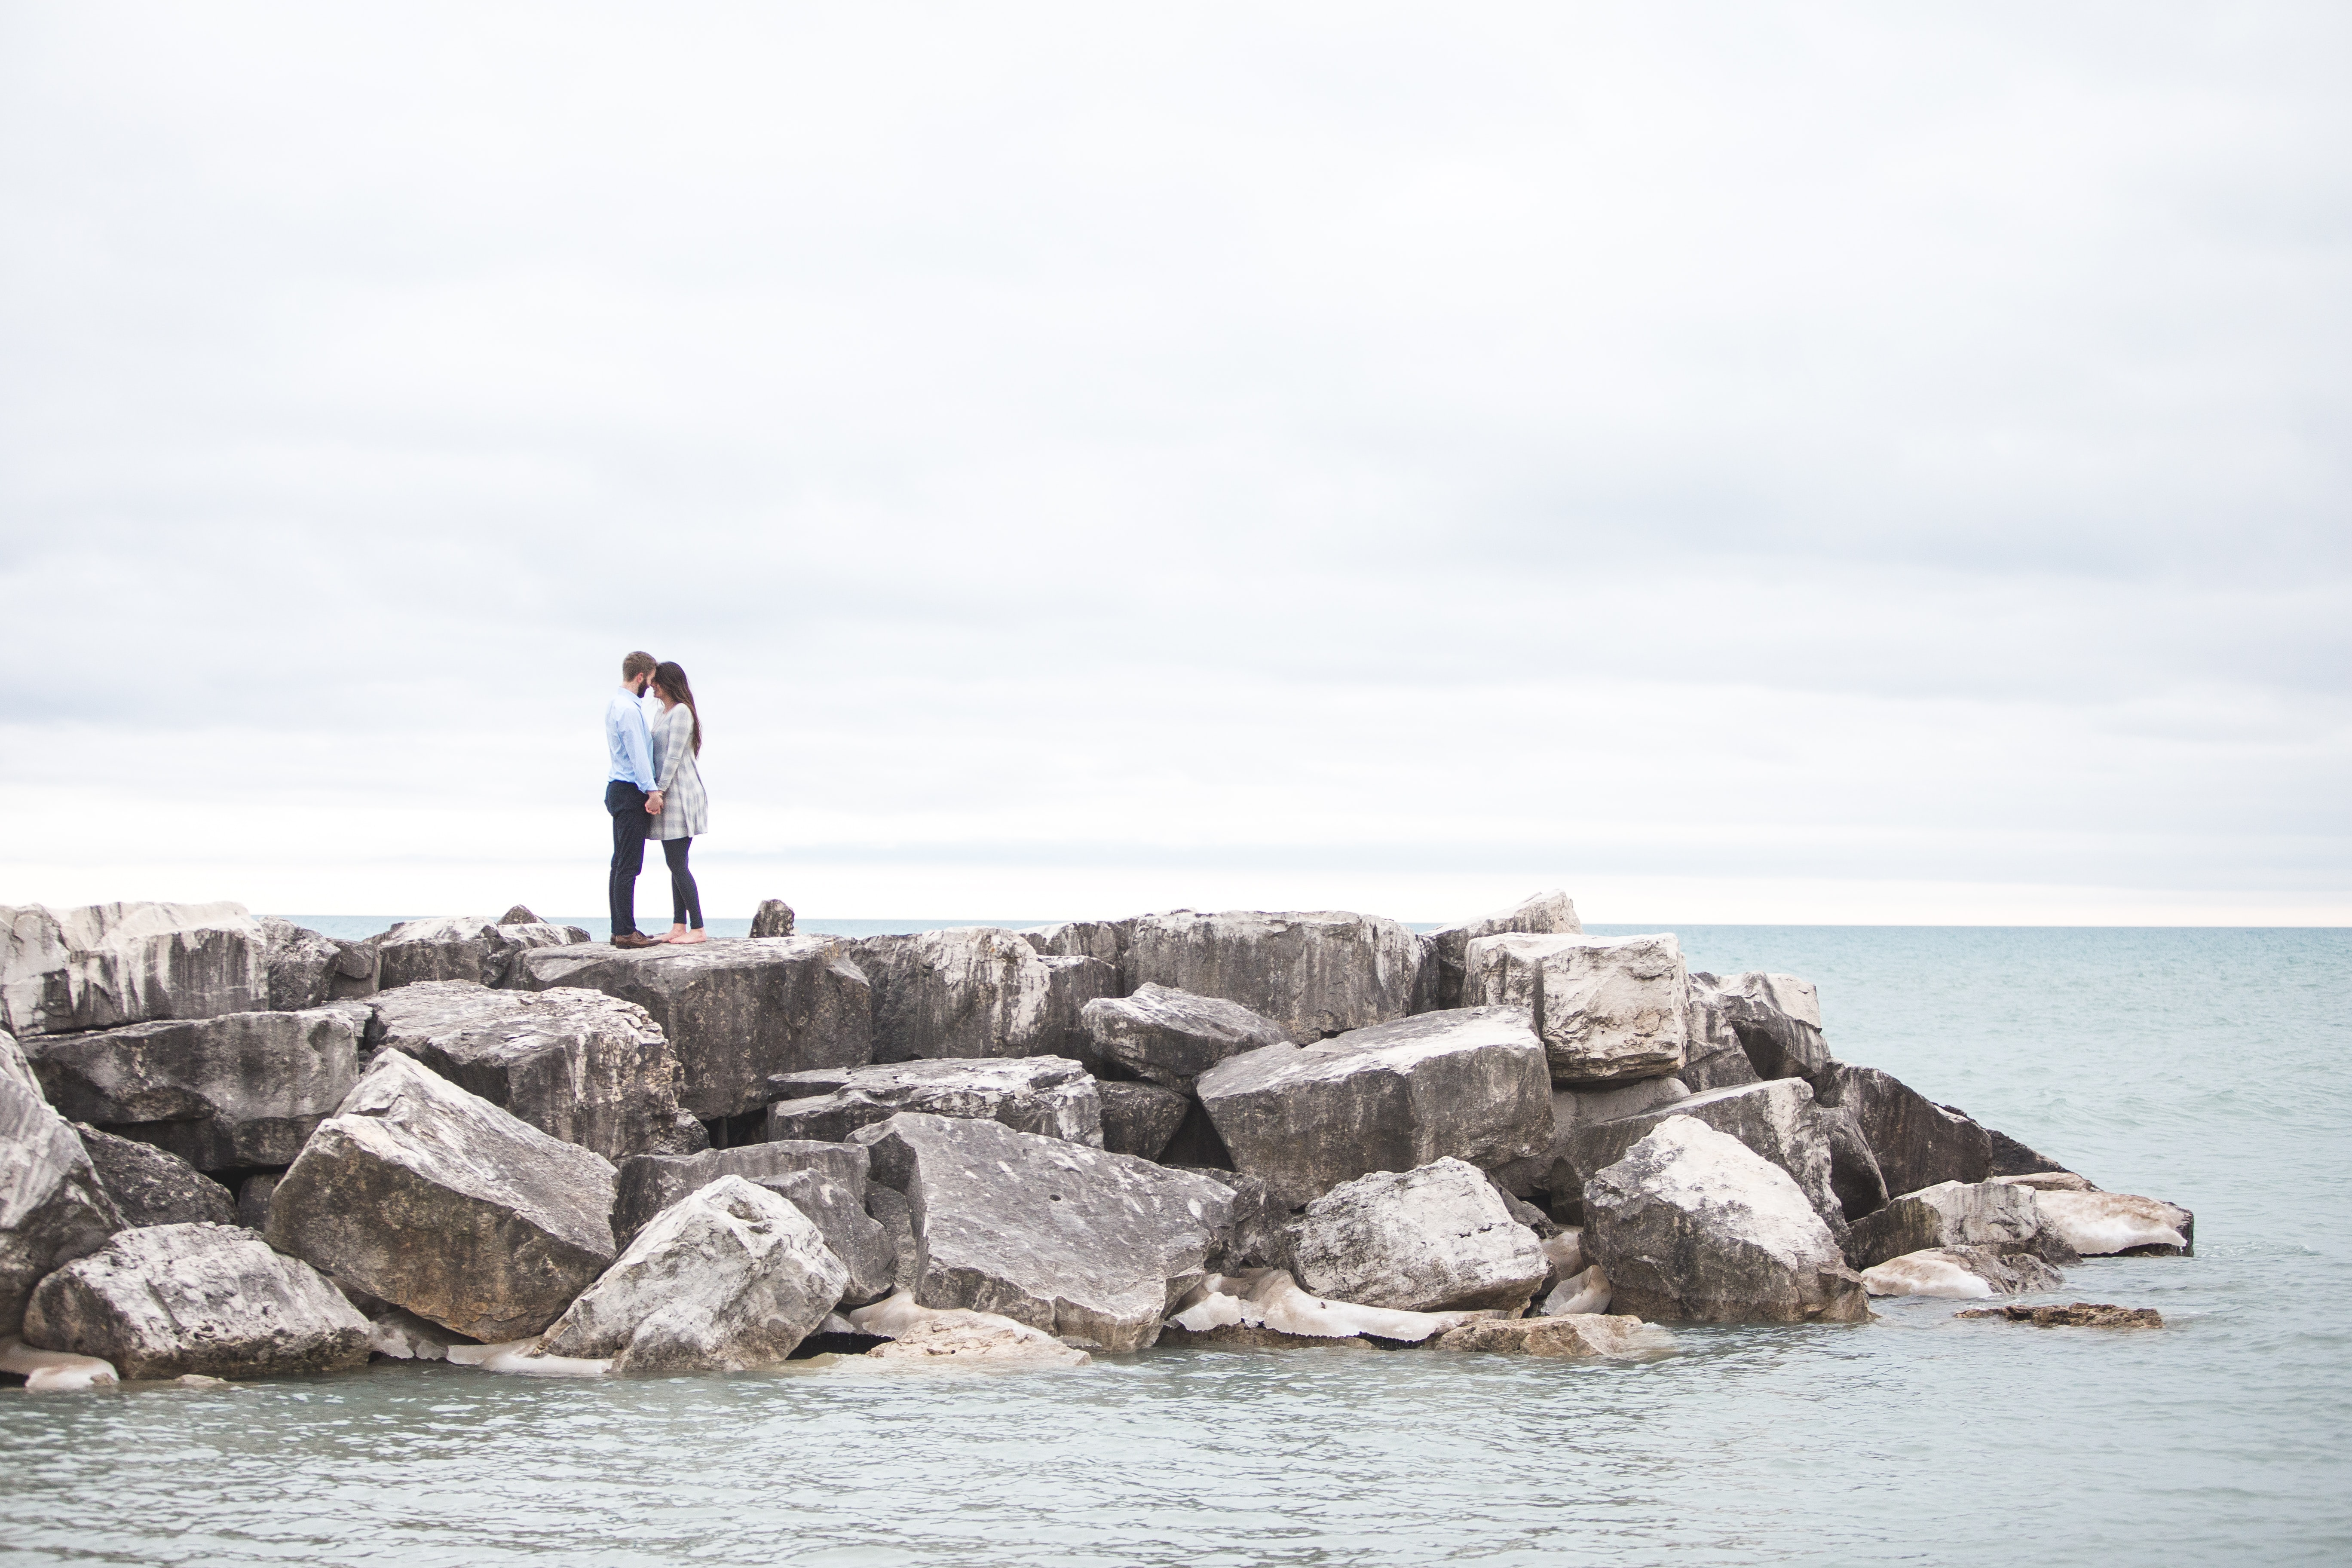 Standing atop a stone jetty on the ocean, a couple shares a tender moment